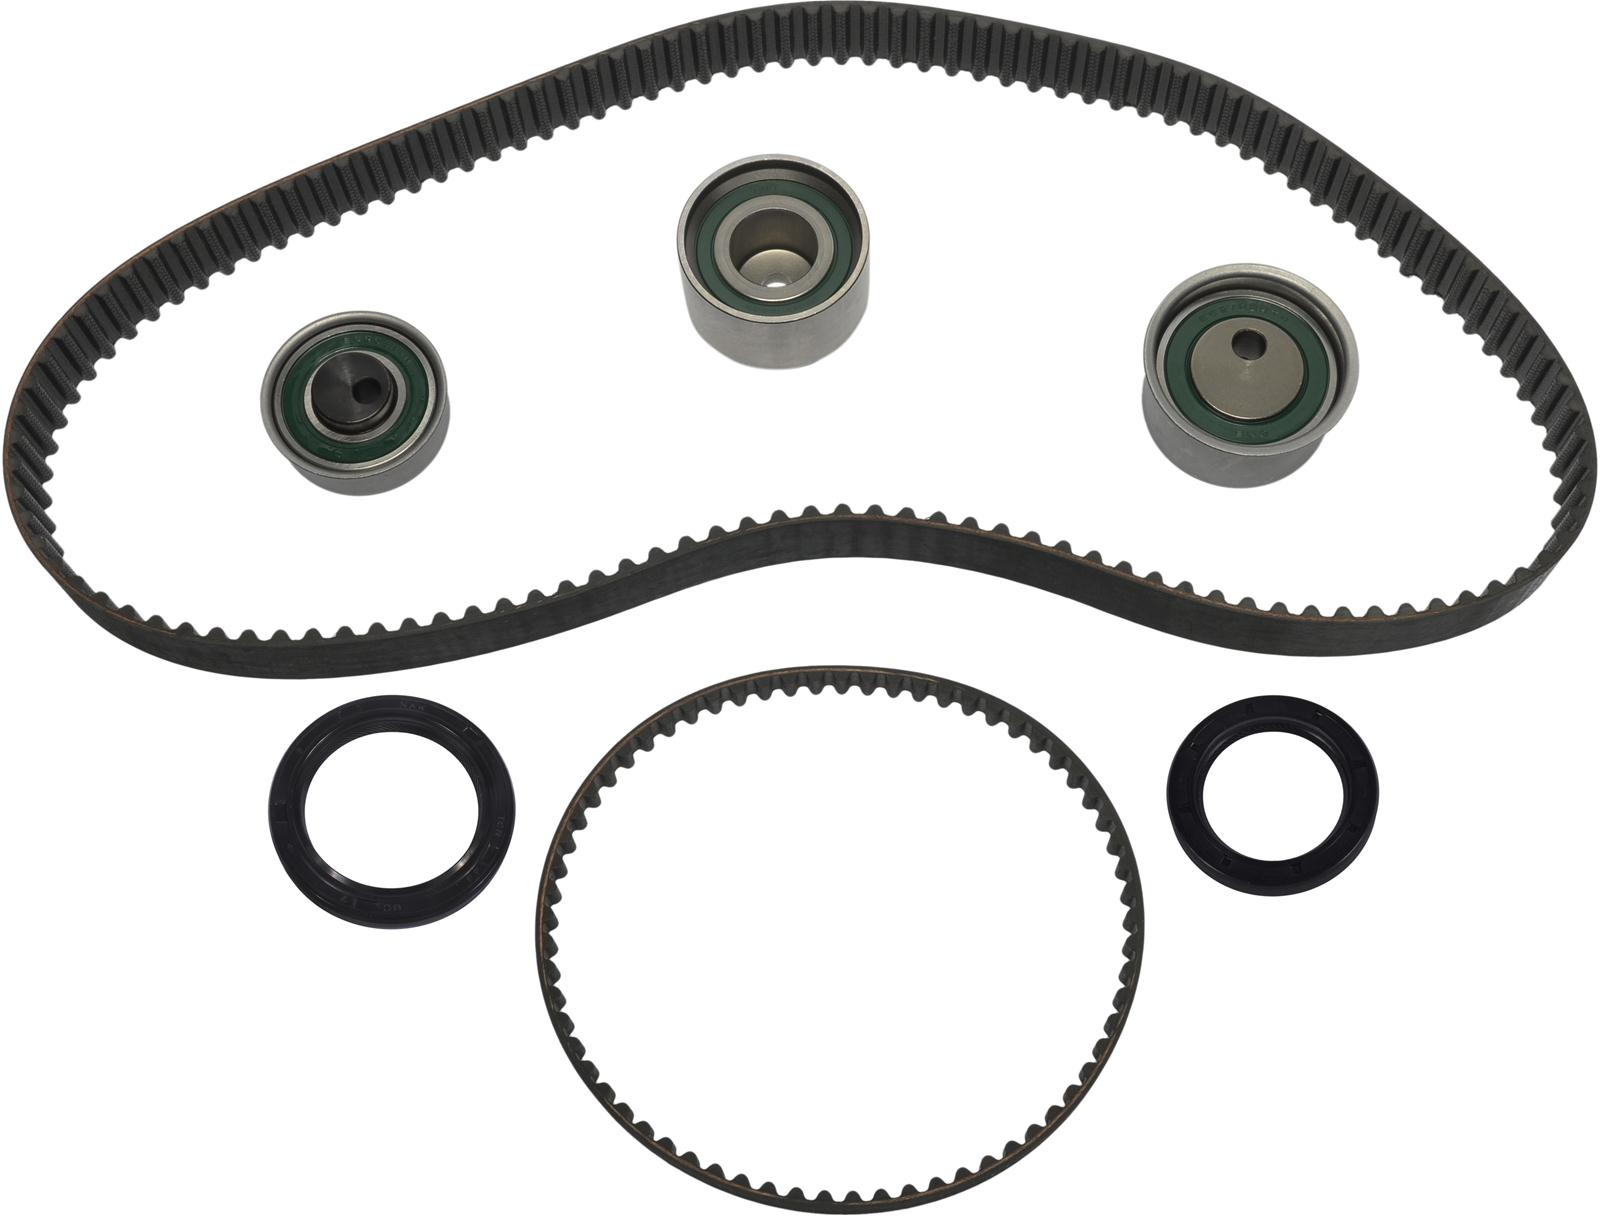 hight resolution of continental elite timing belt kits gtk0232a free shipping on orders over 99 at summit racing